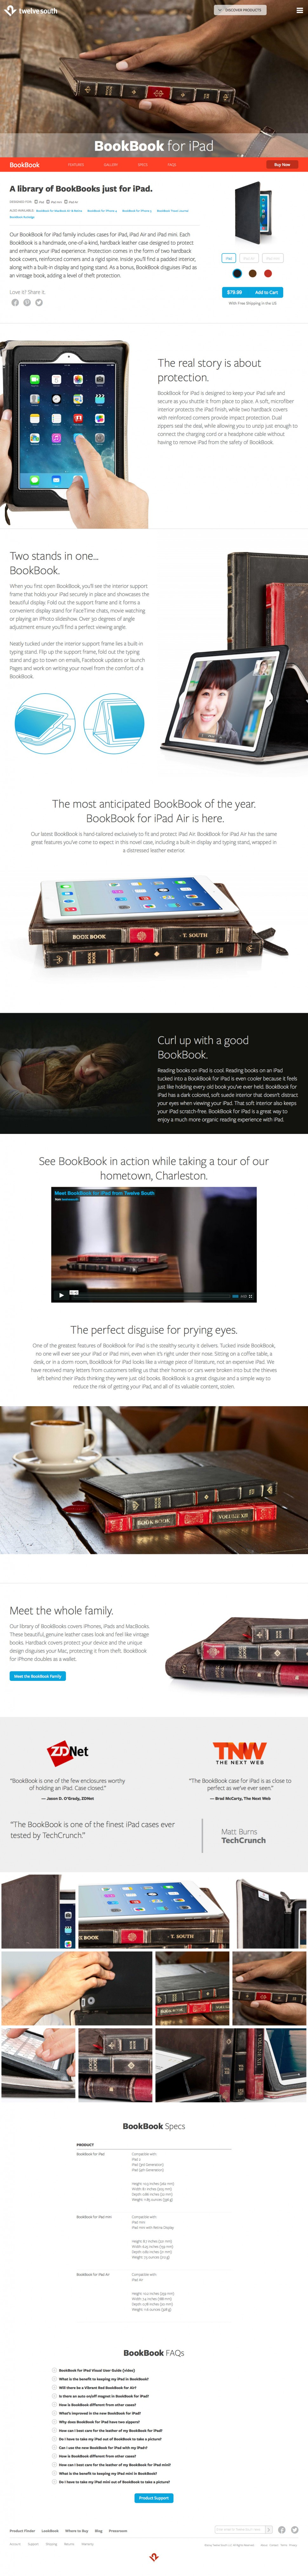 twelve south - product page